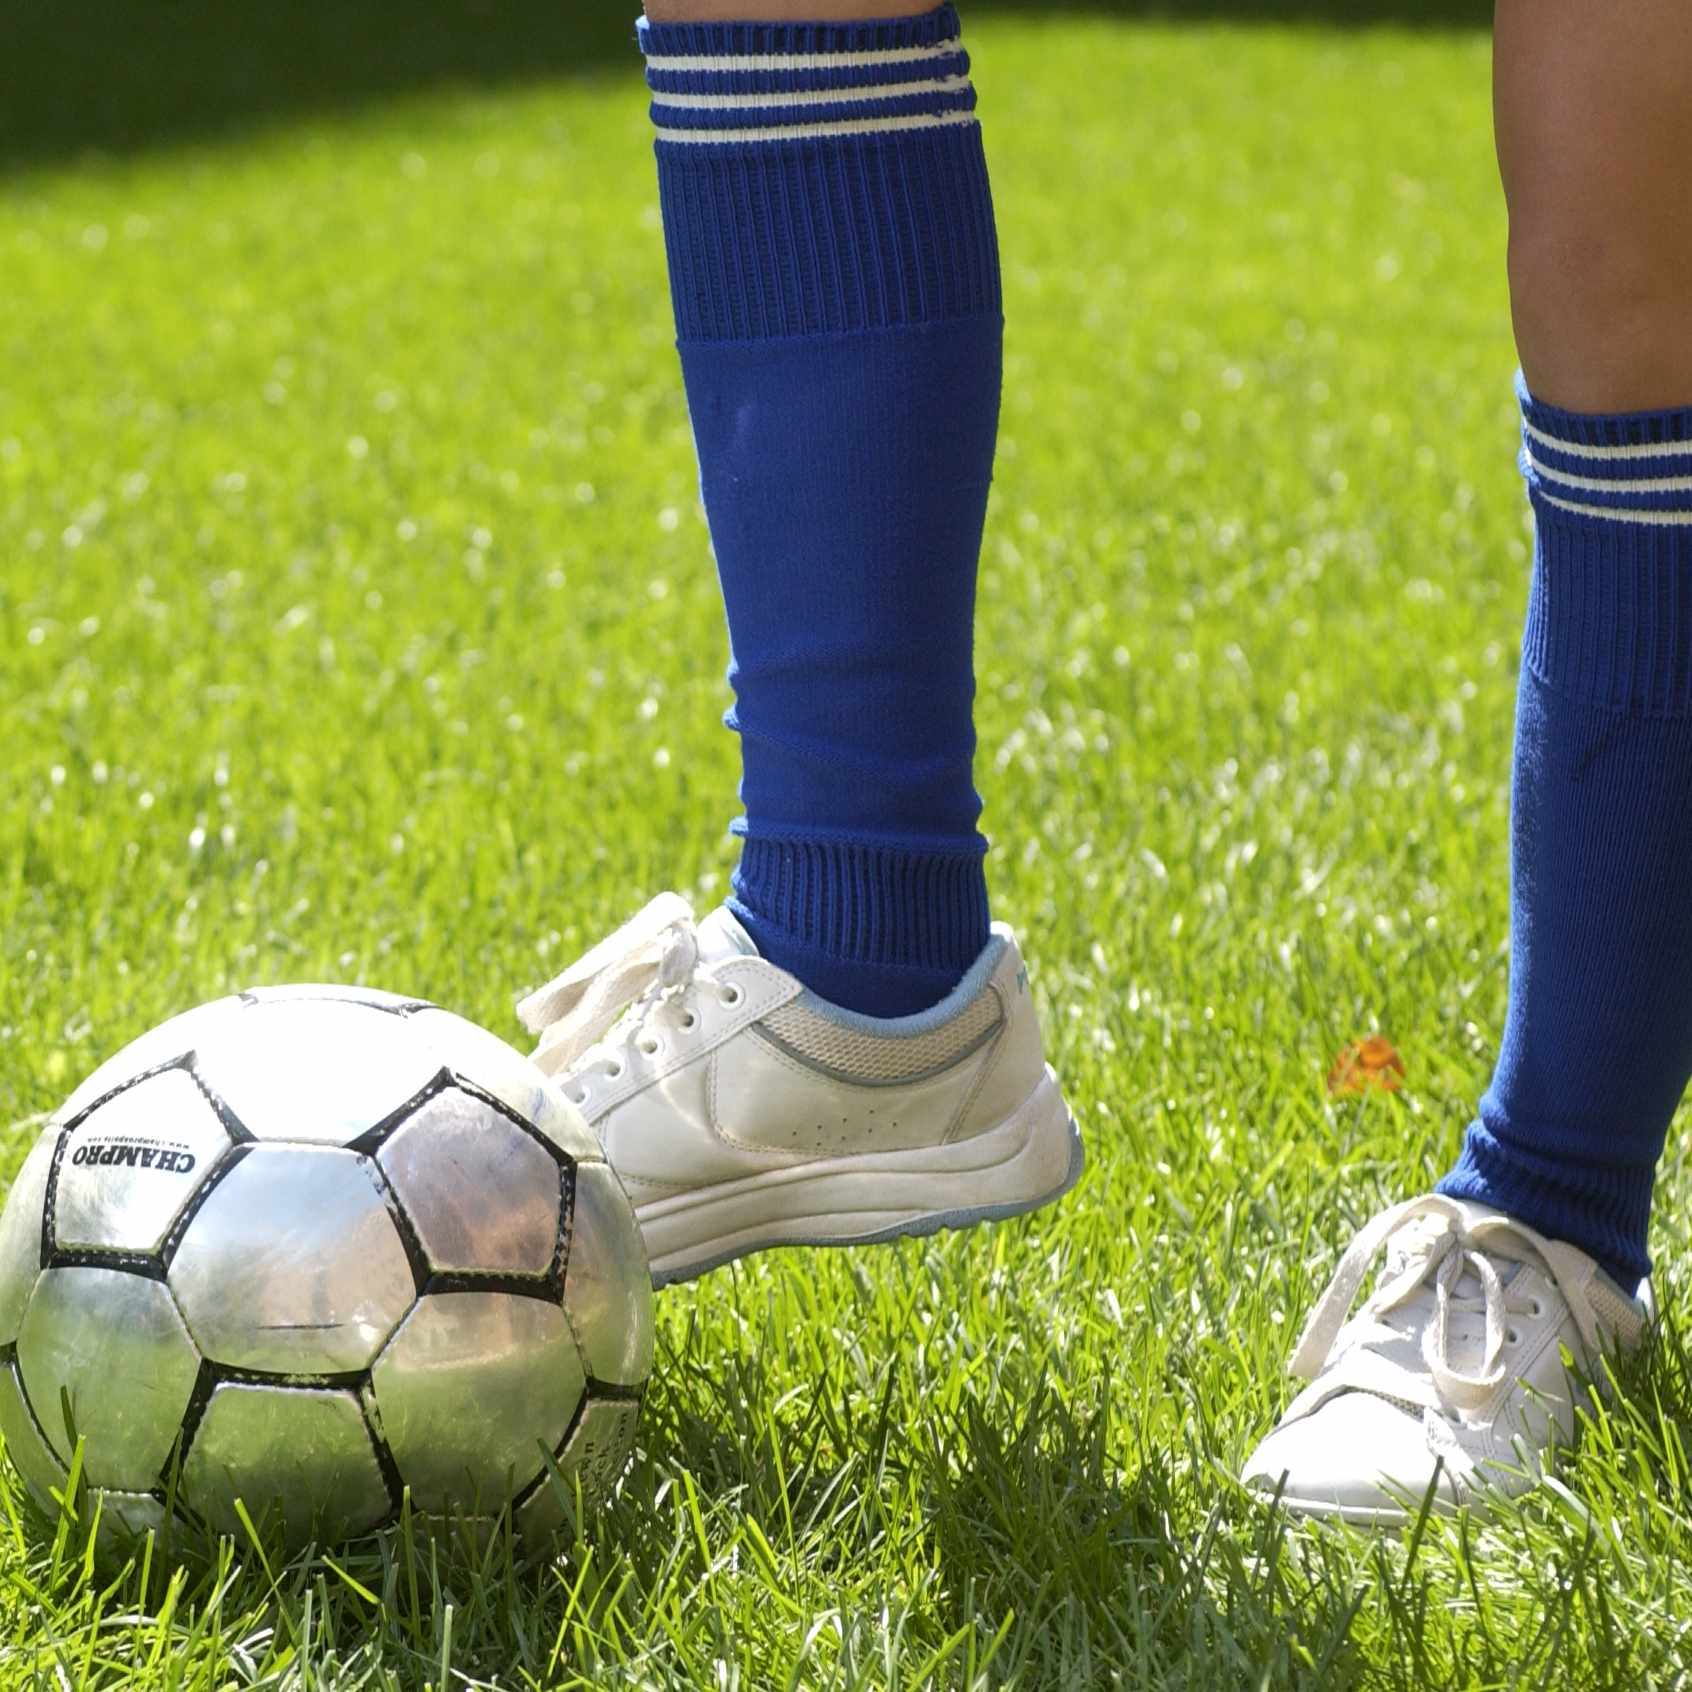 Foot and leg next to soccer ball